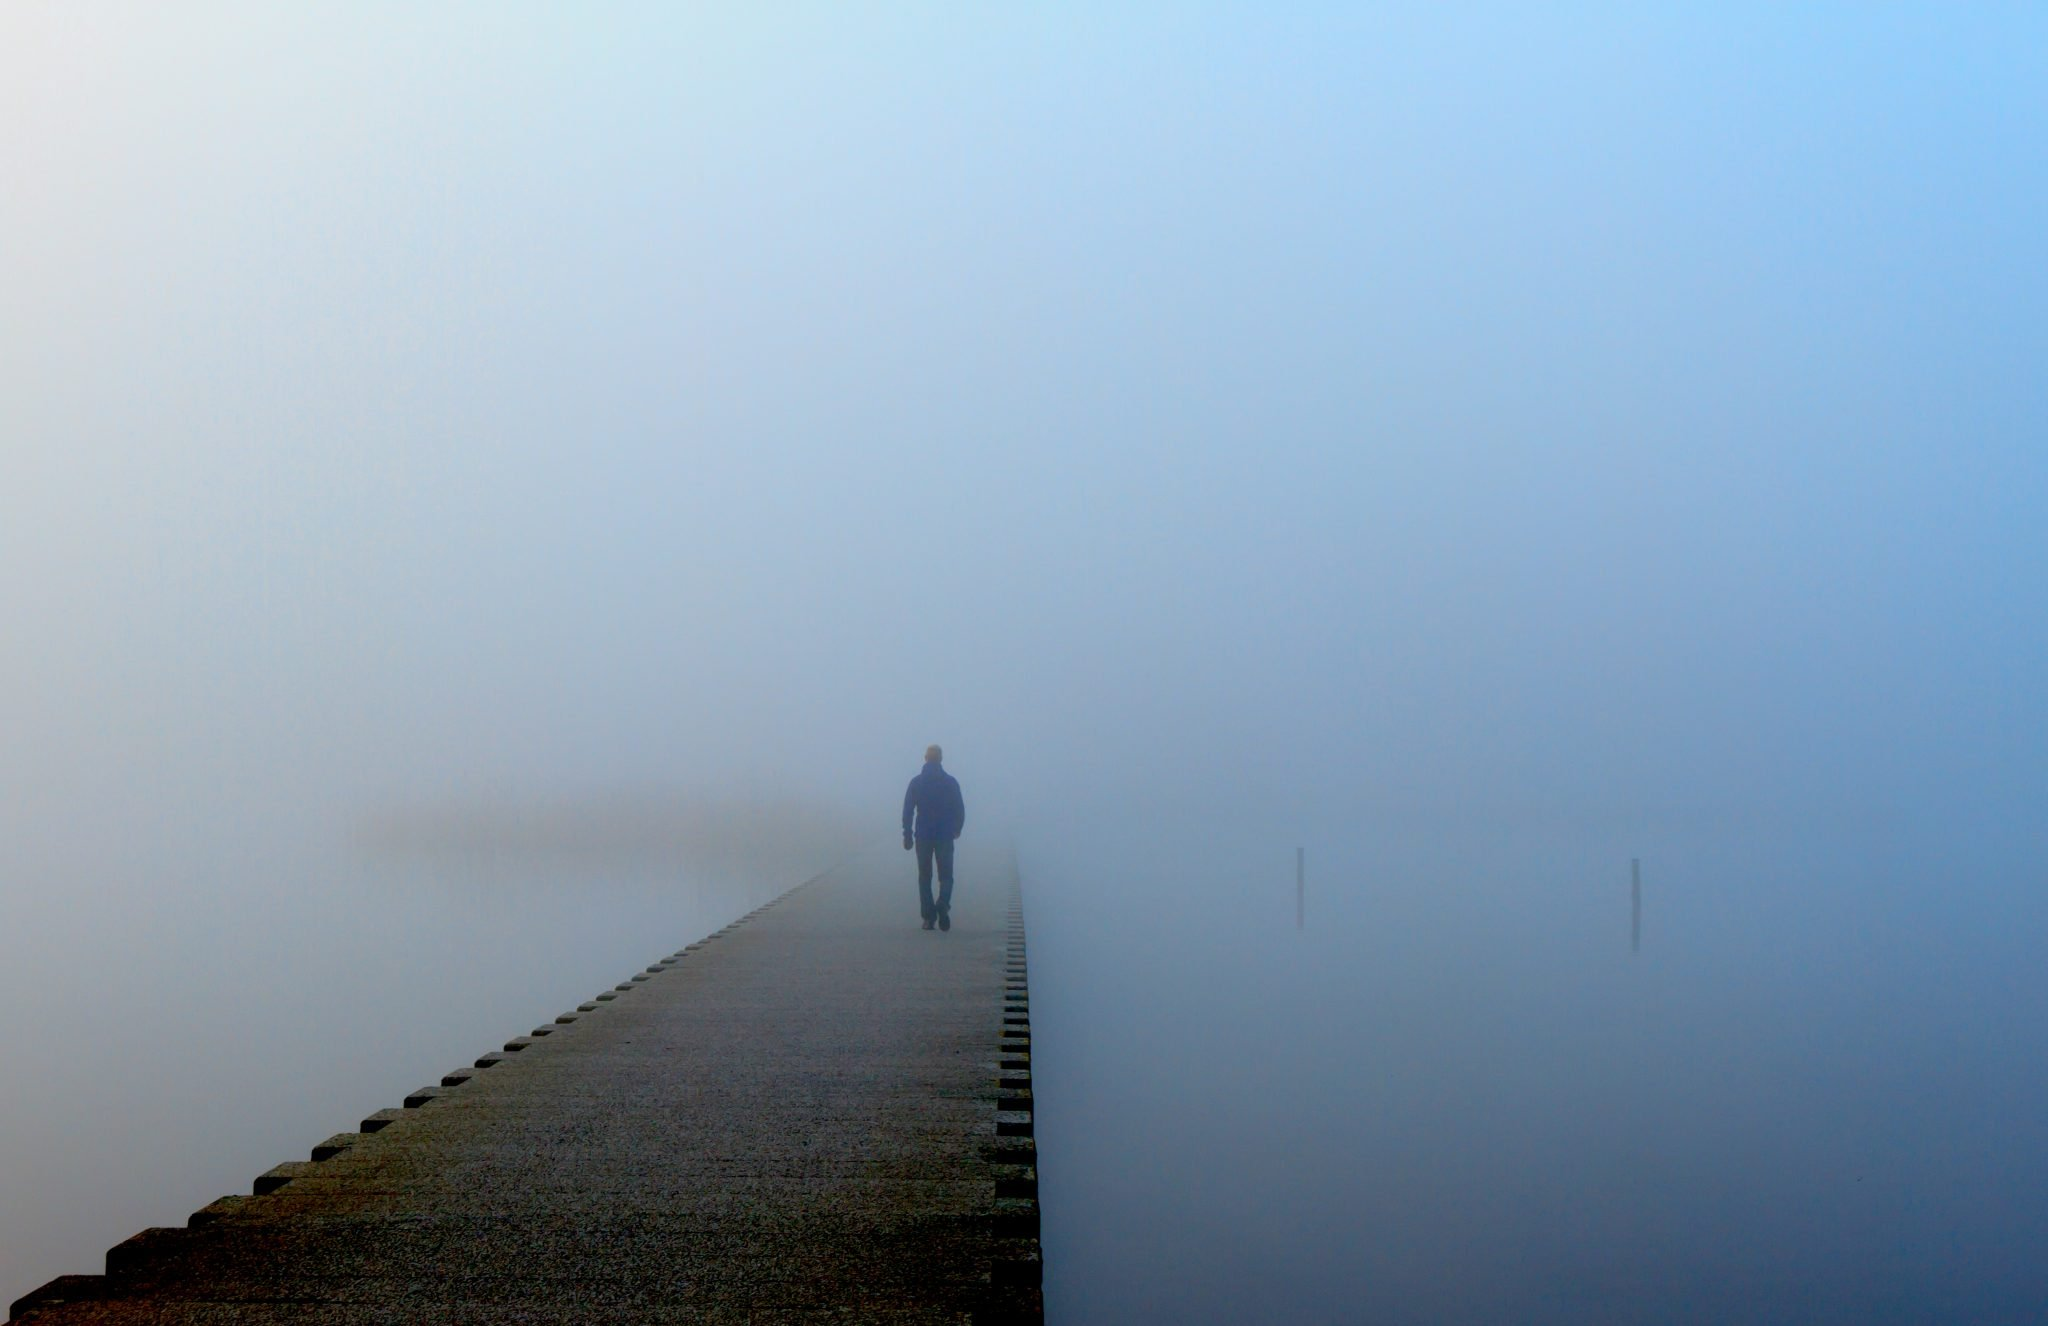 Man walking on dock with thick fog around him